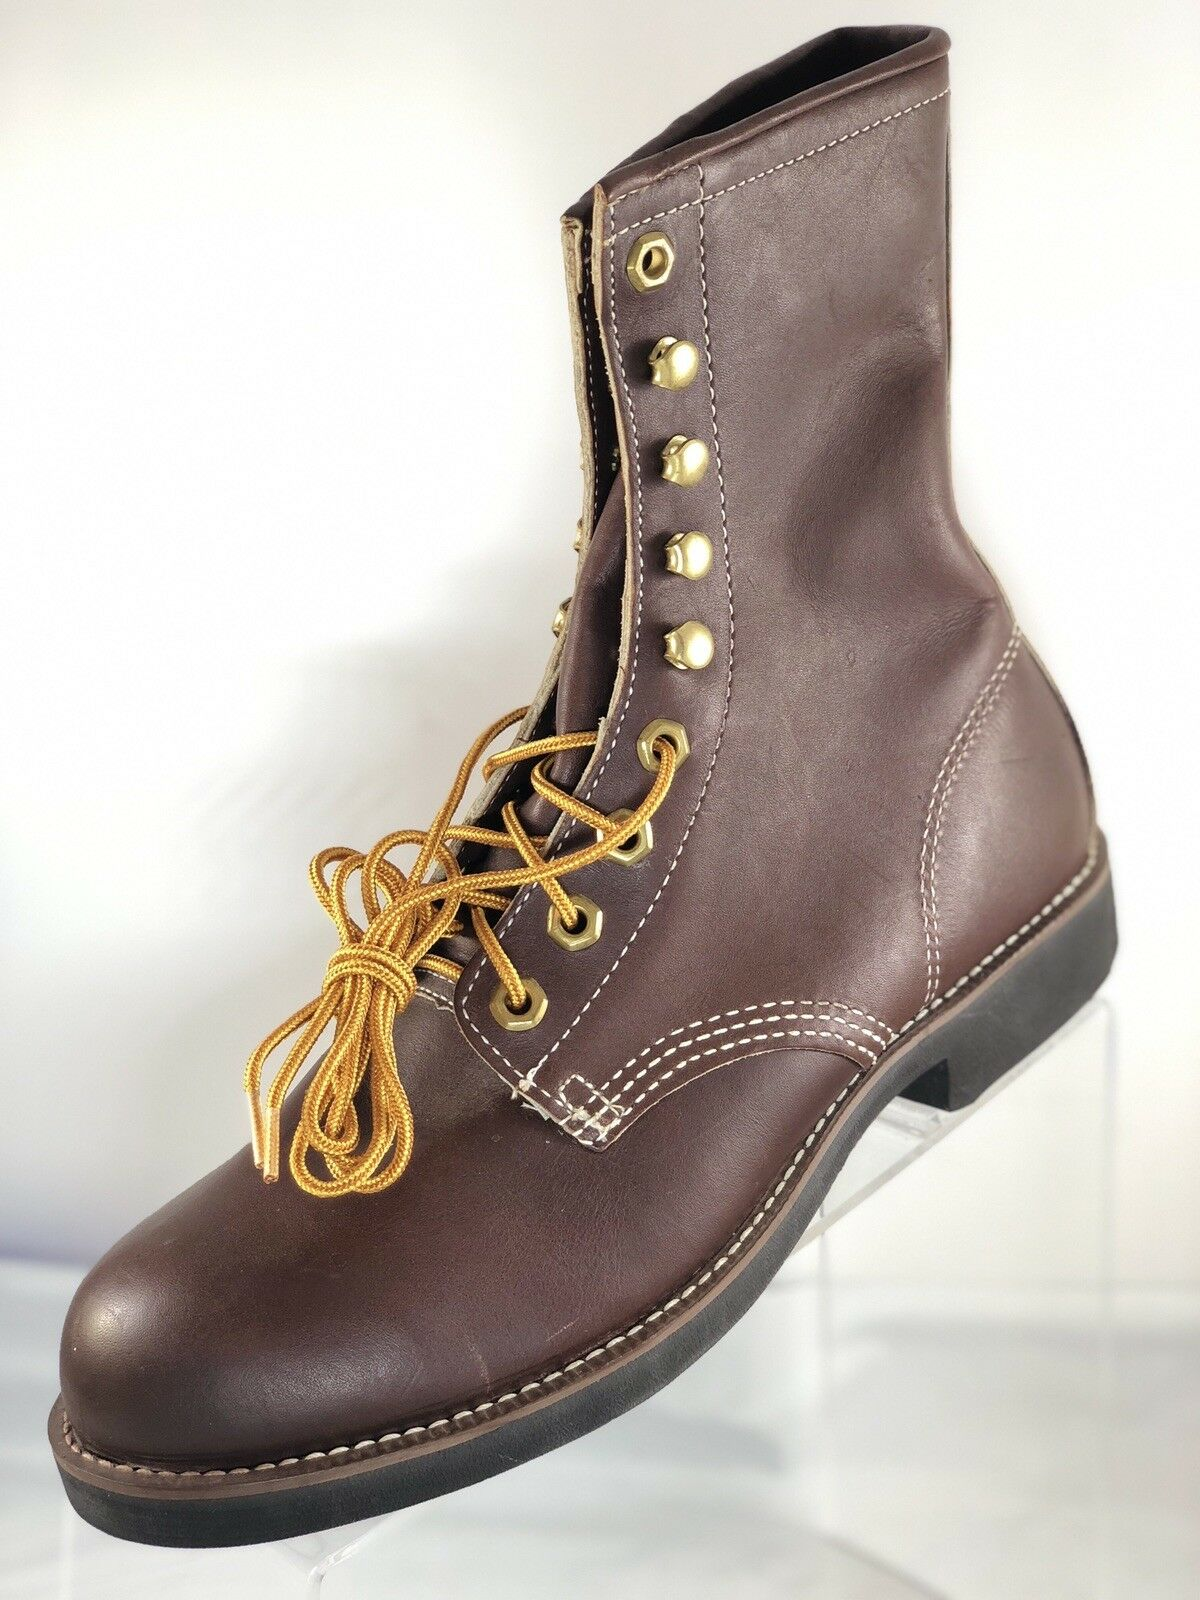 170 Georgia Size 6.5 Lace Up Brown Brown Up Pelle Steel Toe Work Boot Waterproof Shoes cb20fb